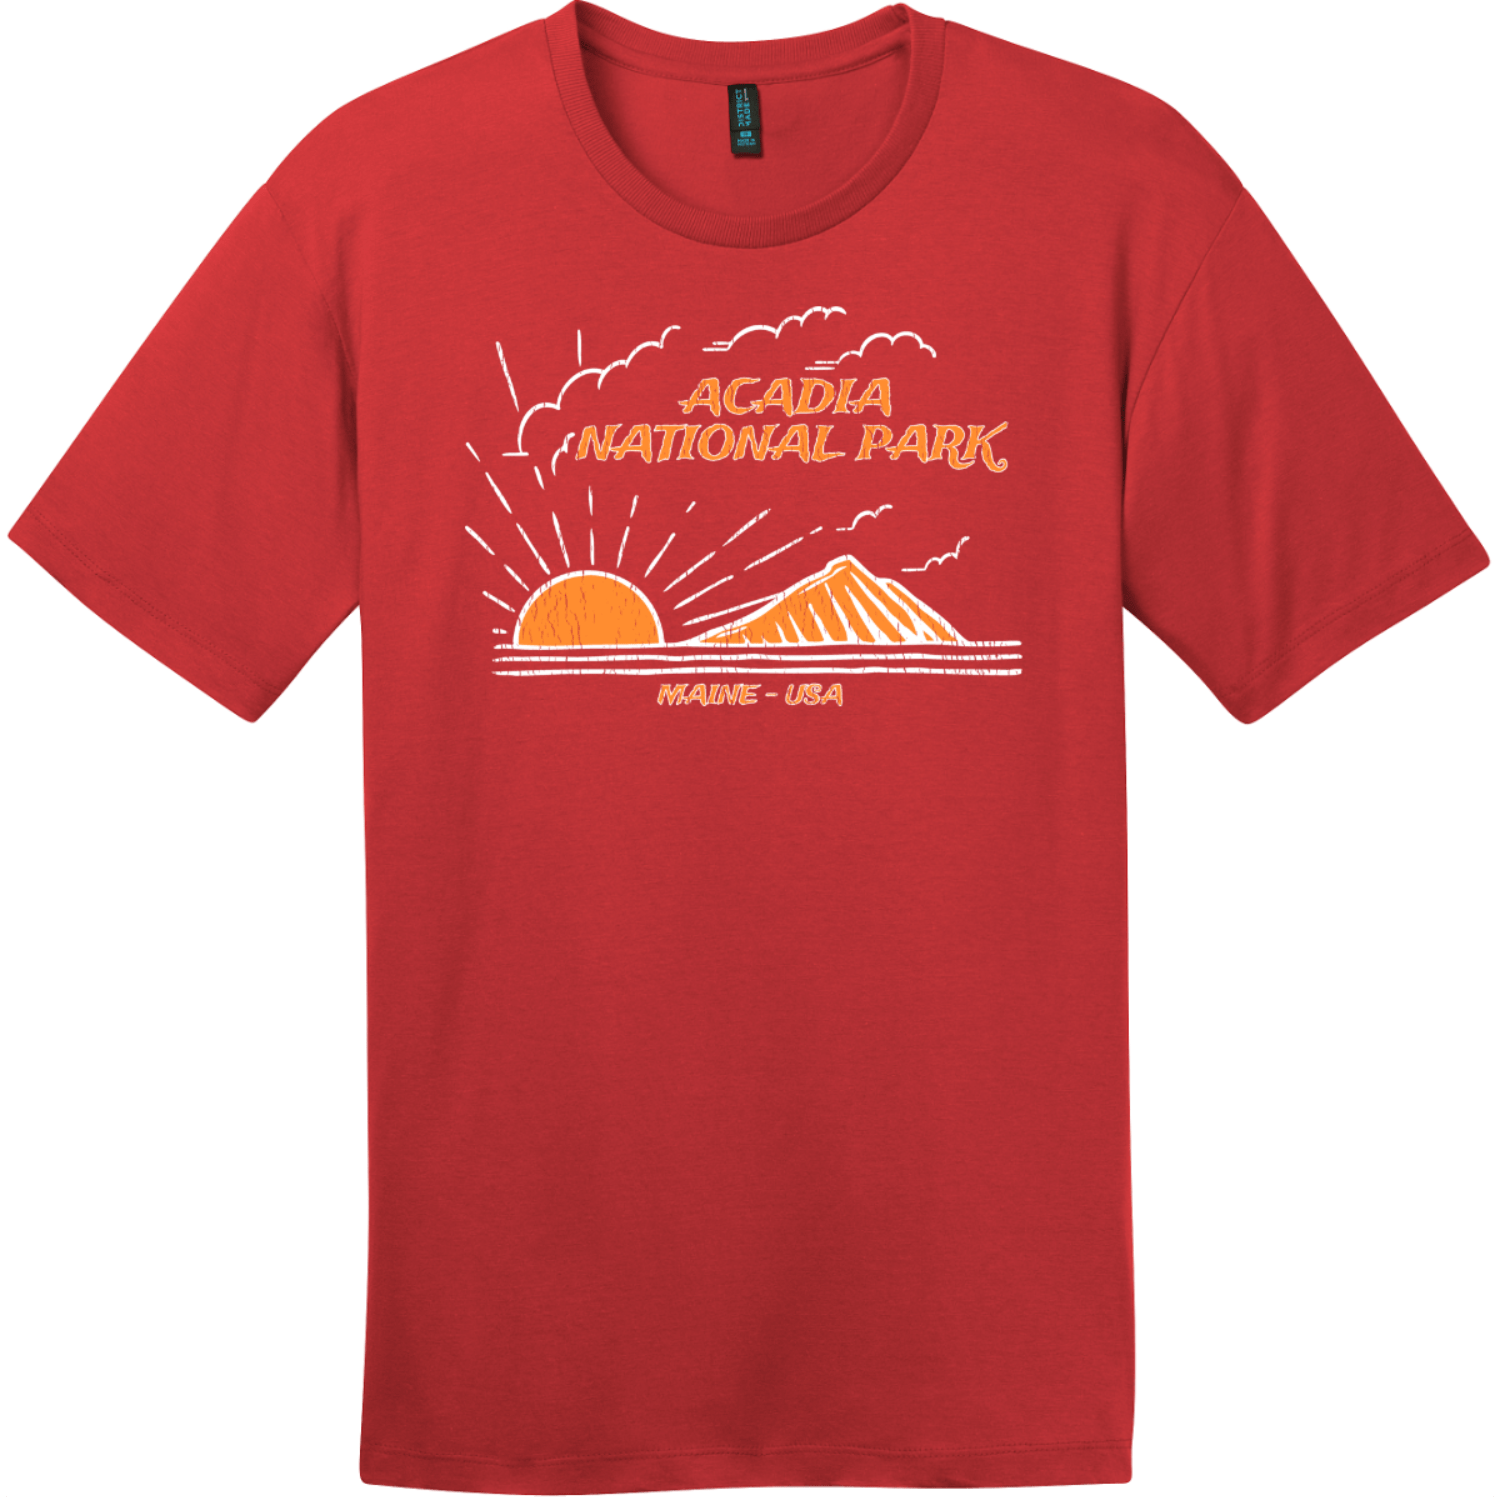 Acadia National Park Mountain To Sea T-Shirt Classic Red District Perfect Weight Tee DT104